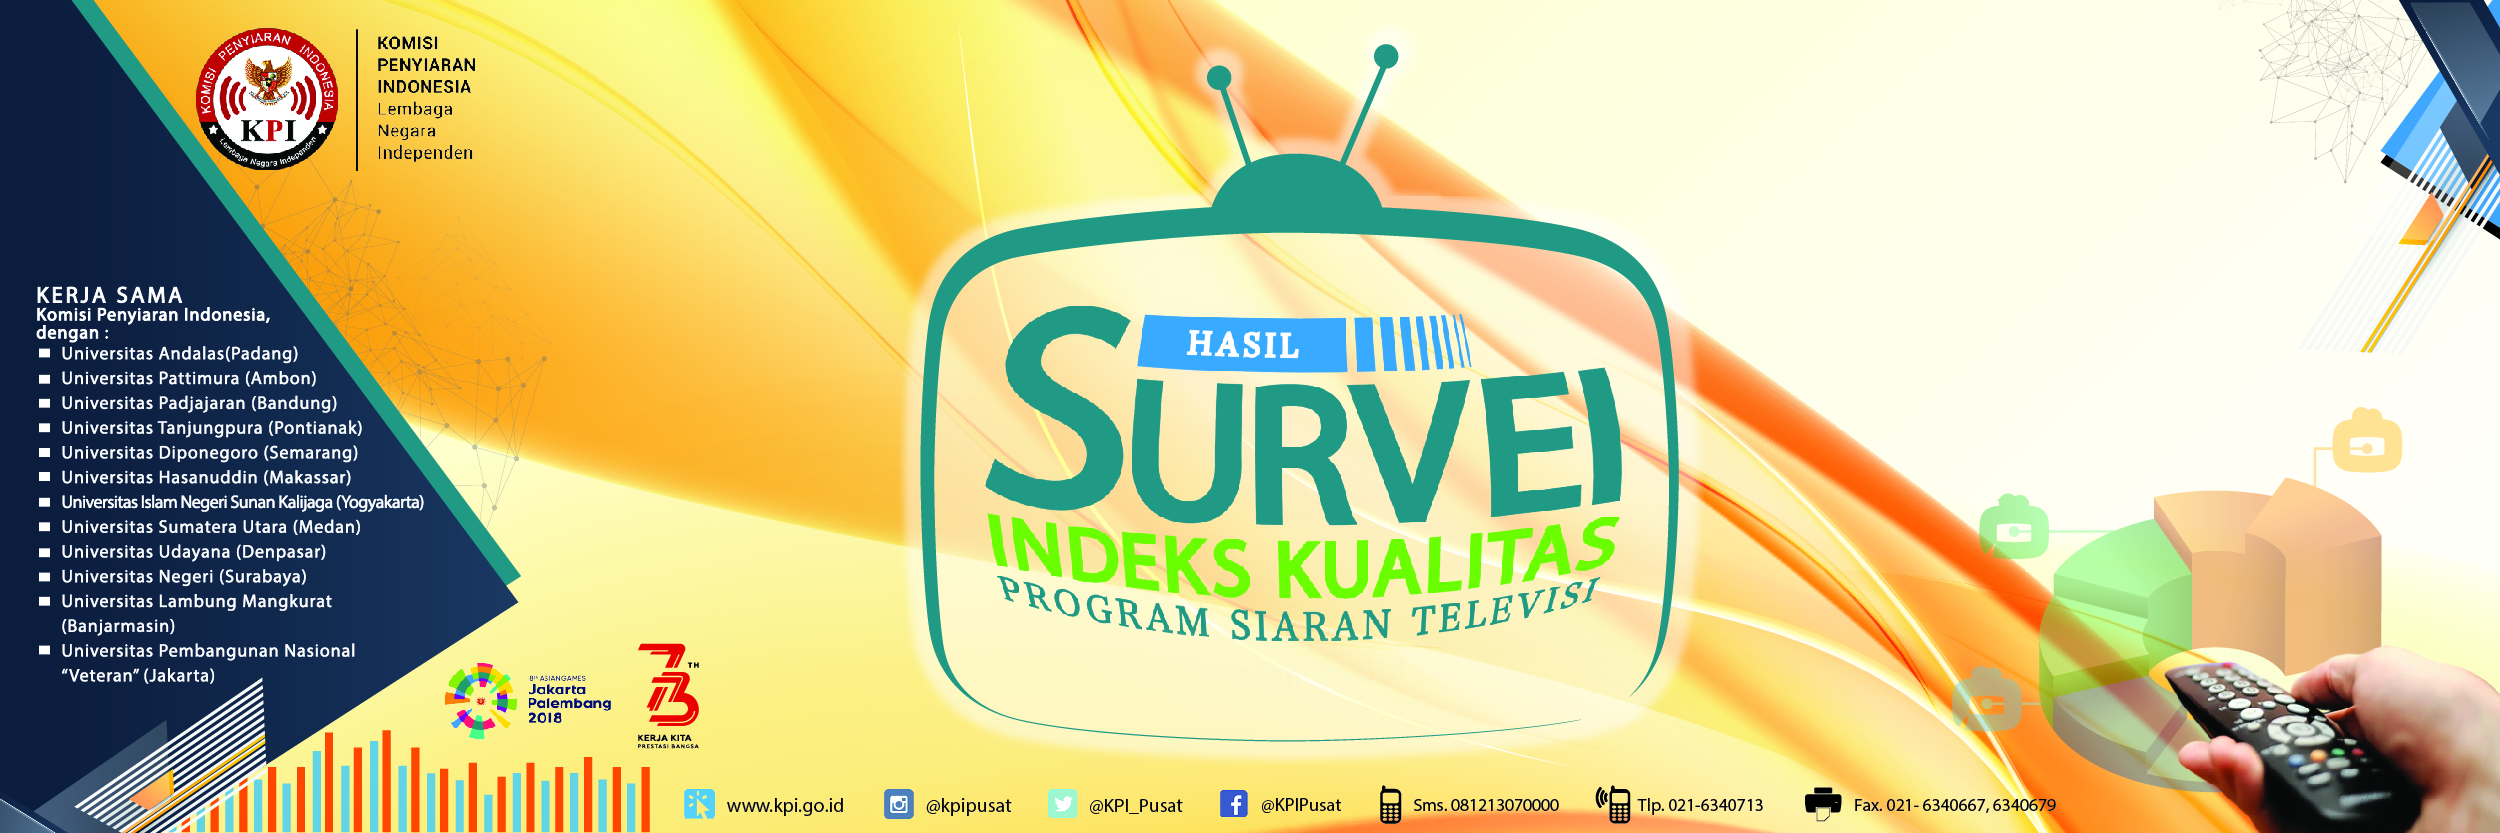 Buku Hasil Survey Indeks Kualitas Program TV Periode I 2018